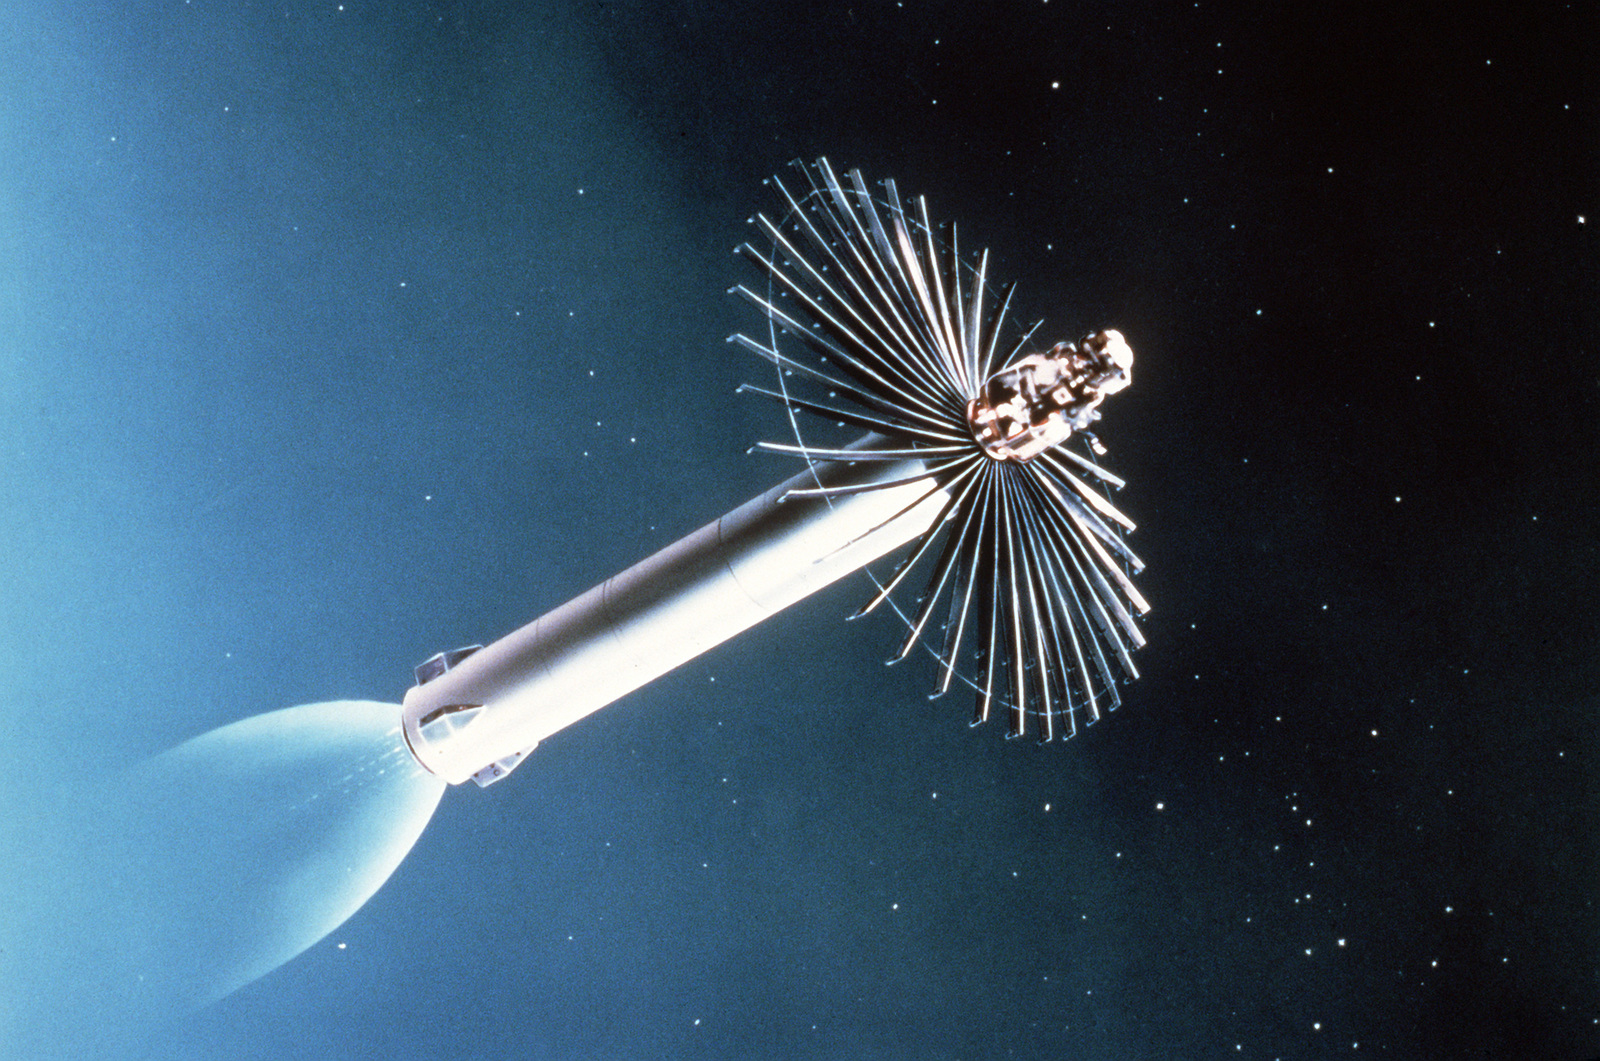 """An artist's concept of the Army Homing Overlay Experiment (HOE) homing and kill vehicle preparing to intercept a mock nuclear warhead more than 100 miles above the mid-Pacific Ocean. The HOE sensor in nose locks onto the target and the third stage axial propulsion motor maneuvers the vehicle onto a collision course. The 15-foot radial """"net"""" opens to destroy the incoming warhead by impact at more than 15,000 feet per second"""